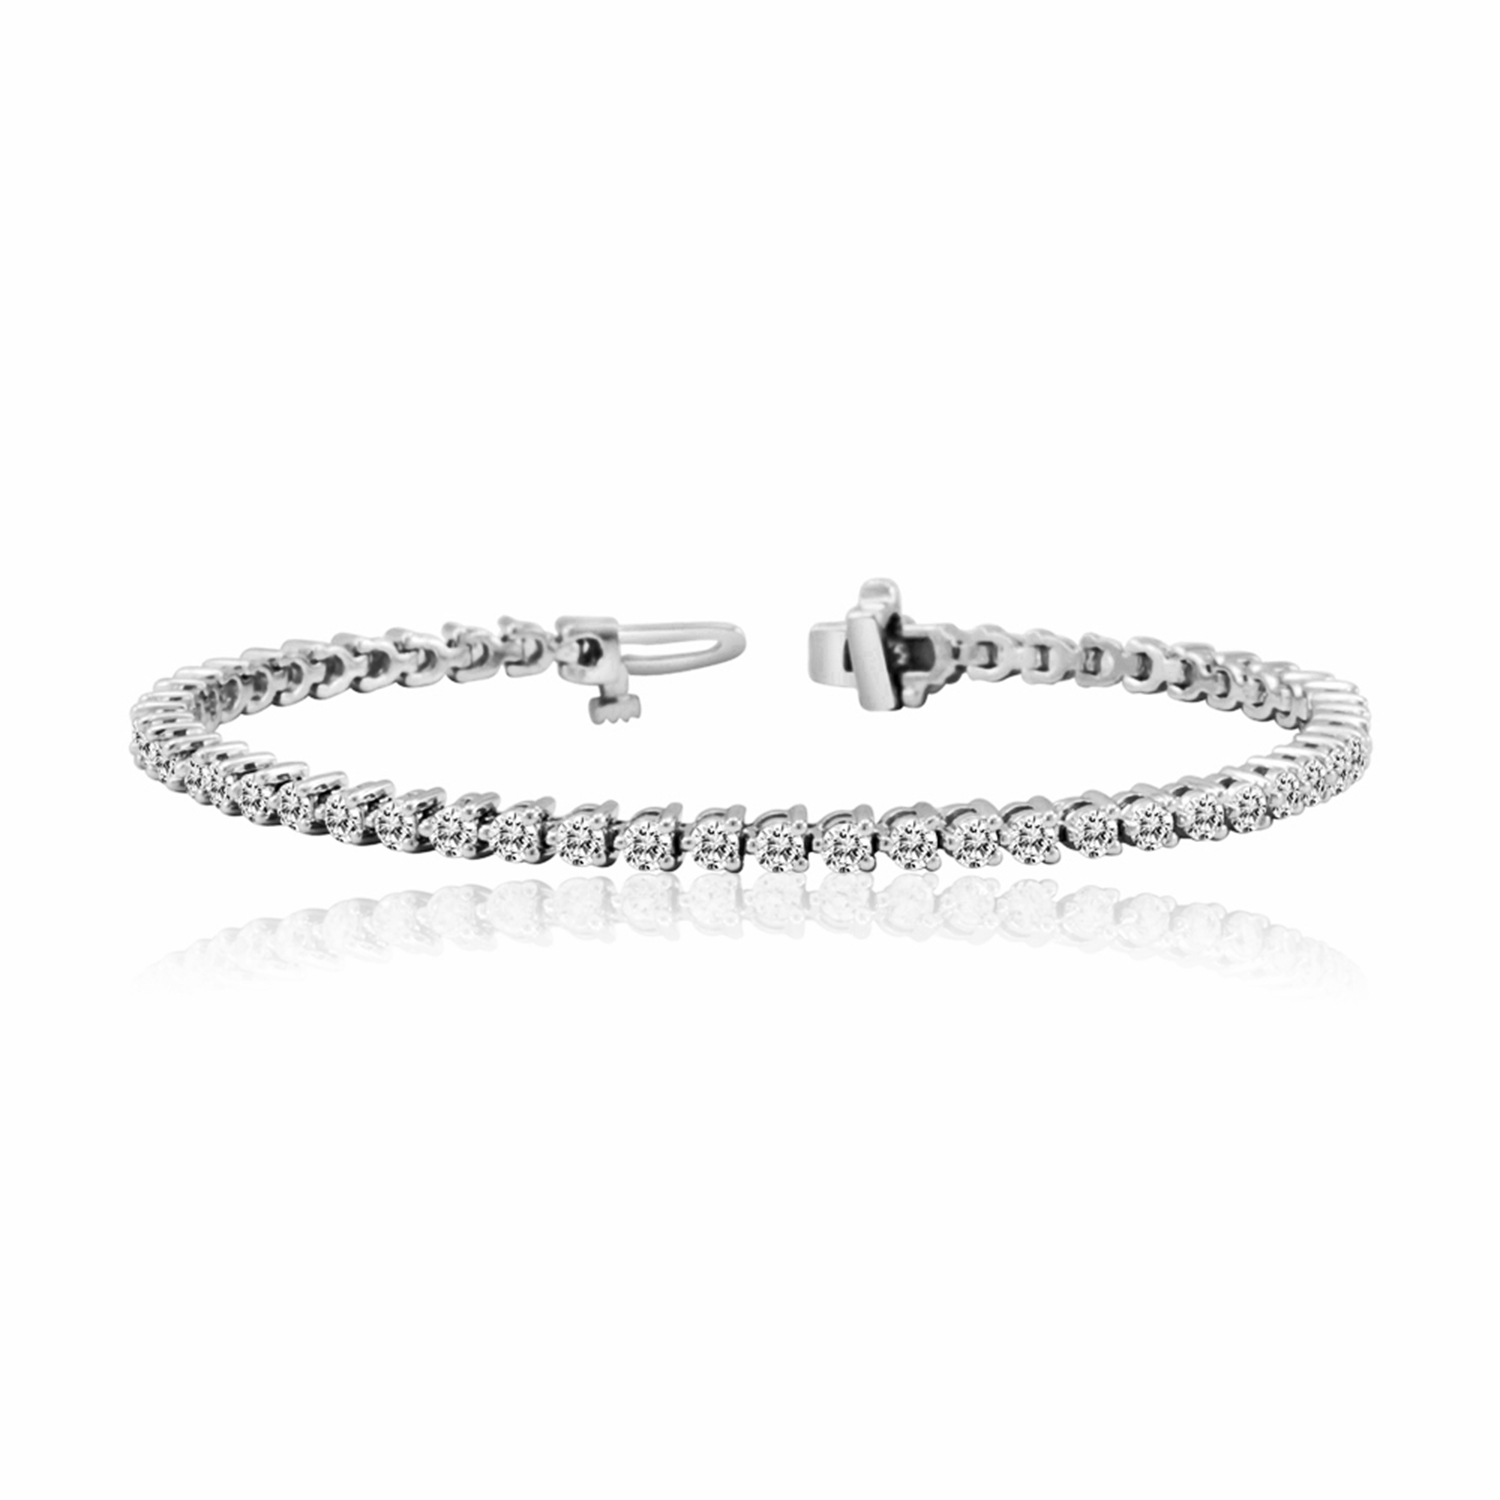 Certified 14k White Gold 3-Prong Round Diamond Tennis Bracelet 4.00 ct. tw. (I-J, I1)